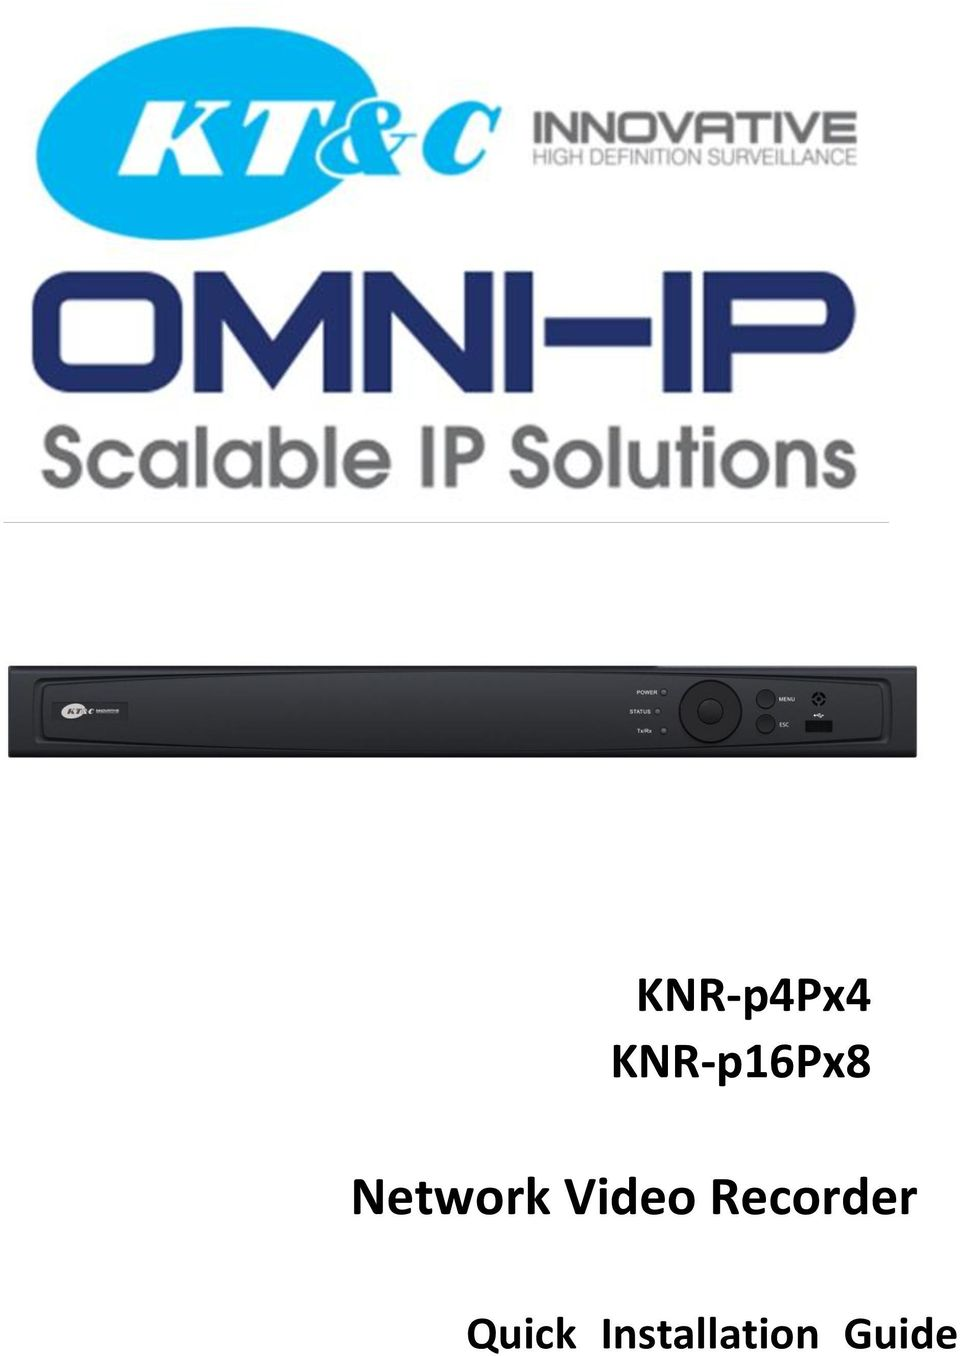 KT&C KNR-p16Px8 NVR Drivers for Windows XP